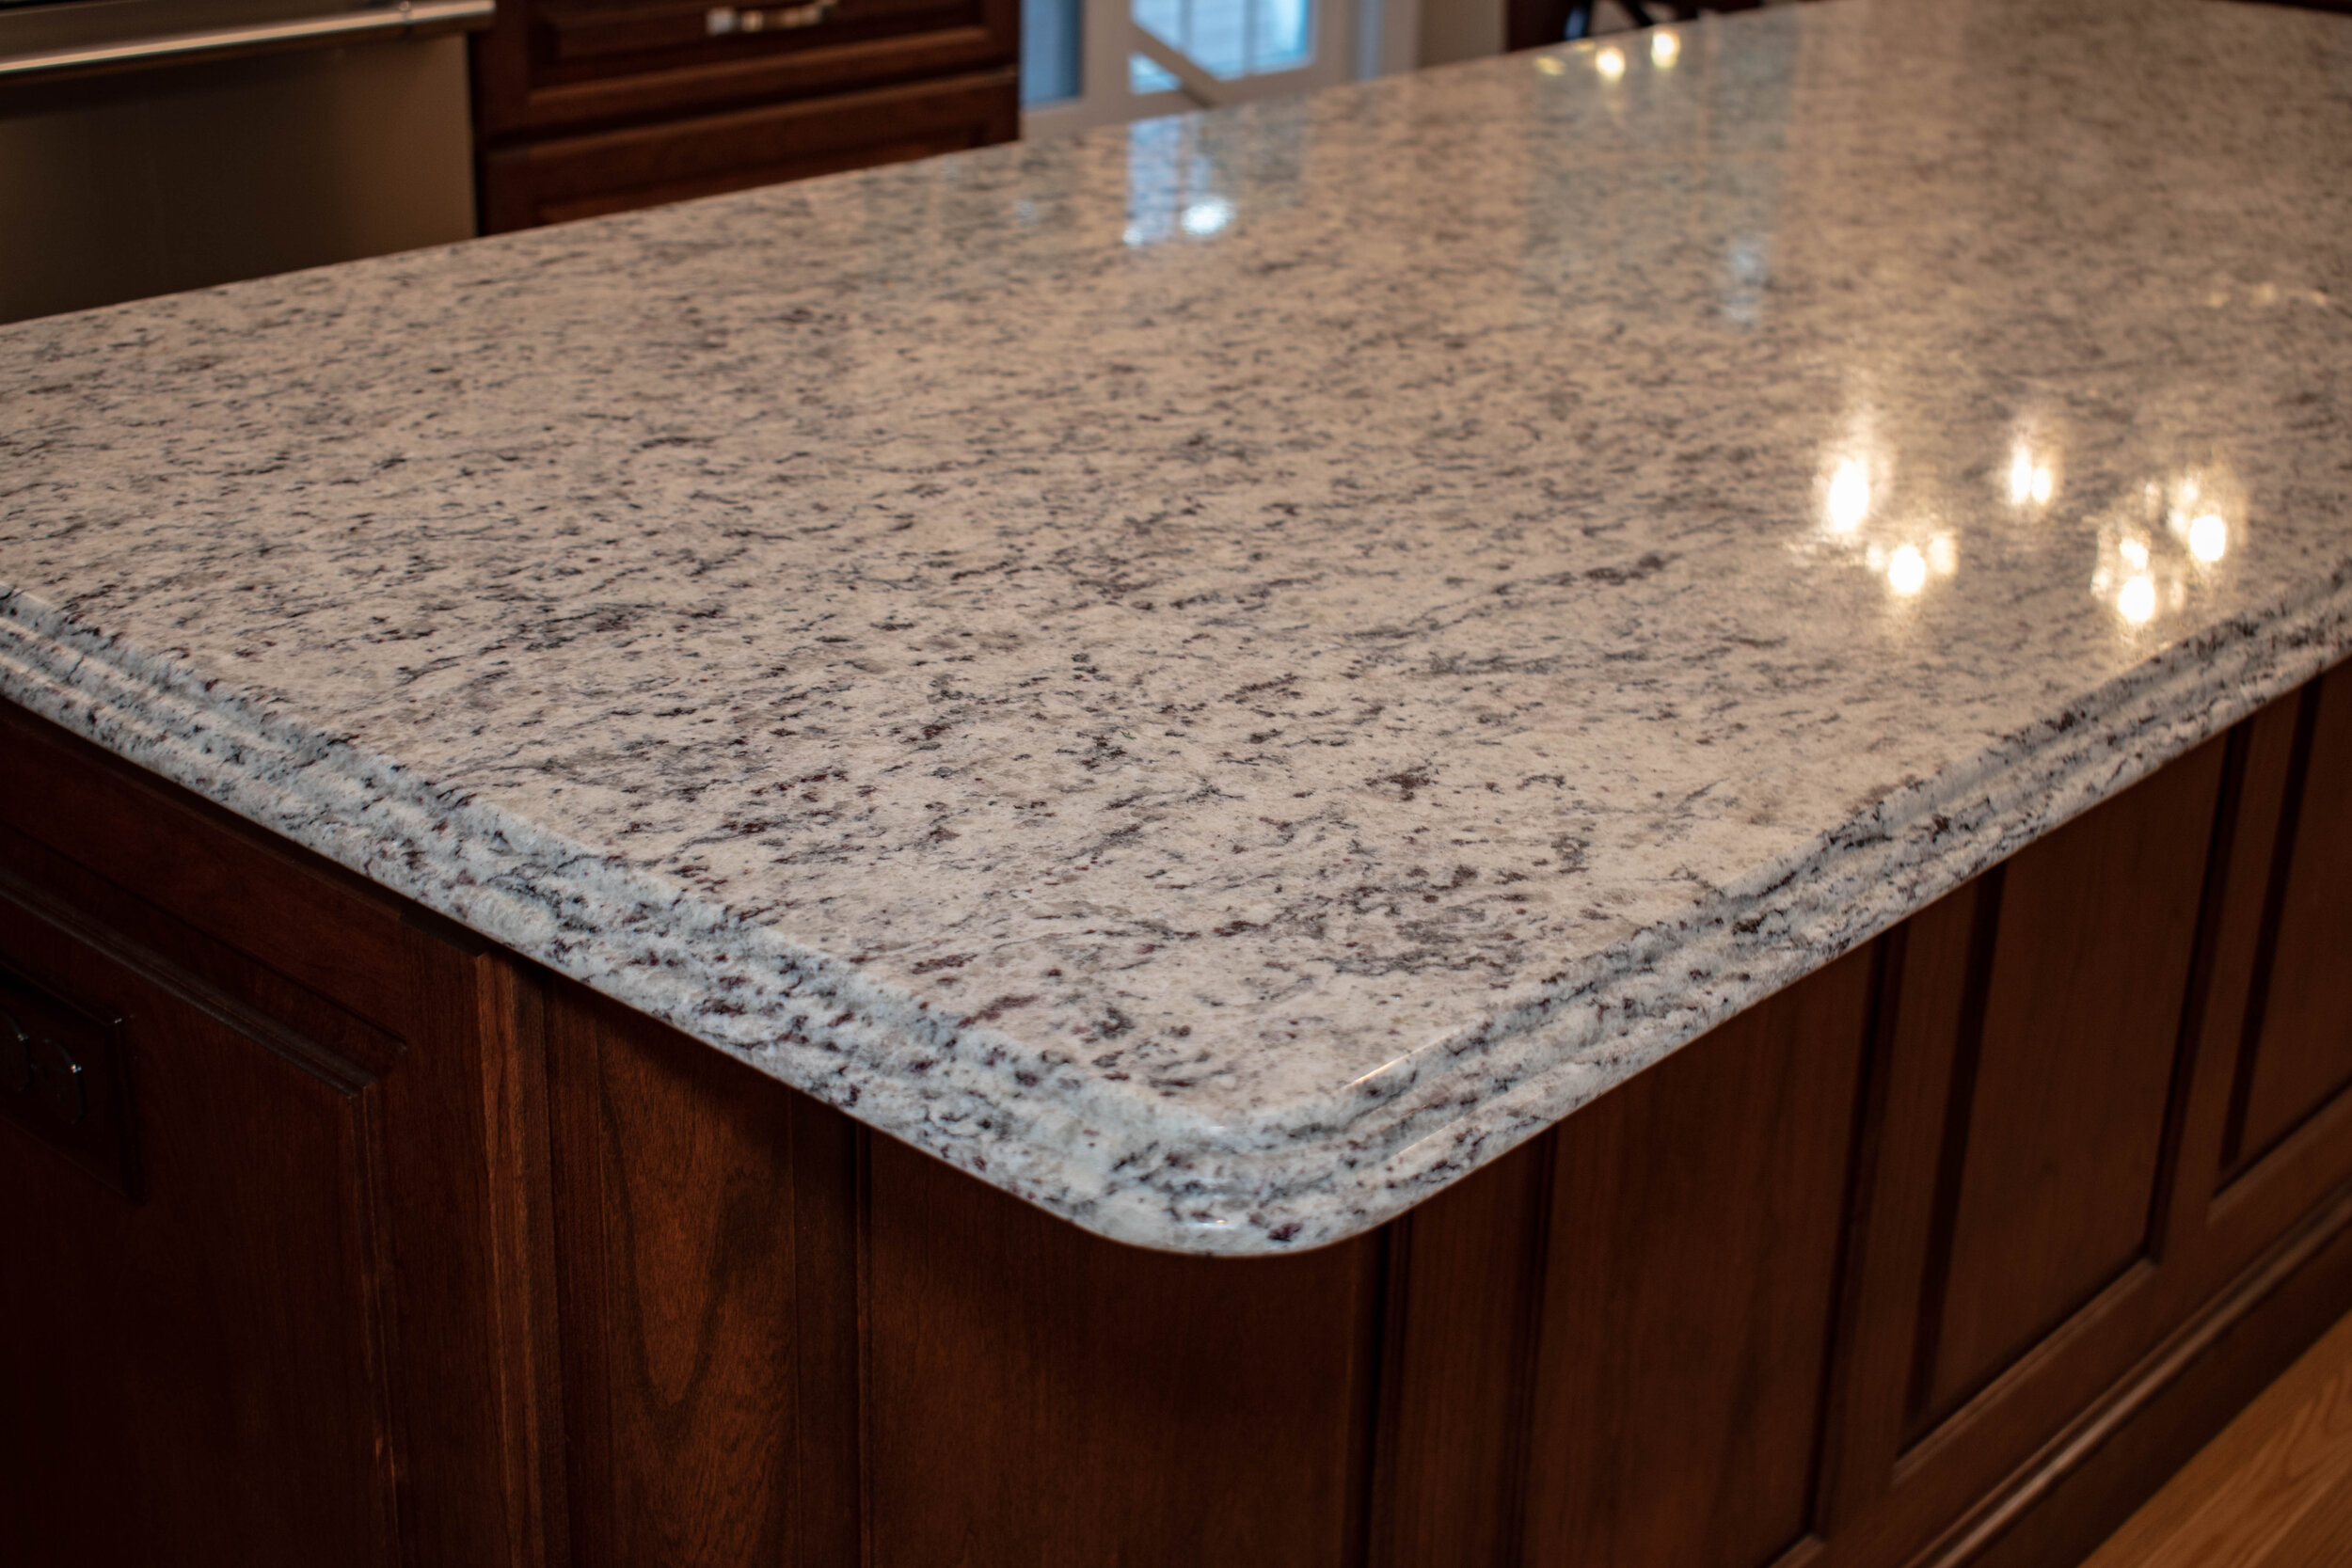 Material: SF / White Ornamental  Thickness, Finish & Stone Type: 3CM Polished Granite  Edge:  Main Counters: Eased Island: Waterfall